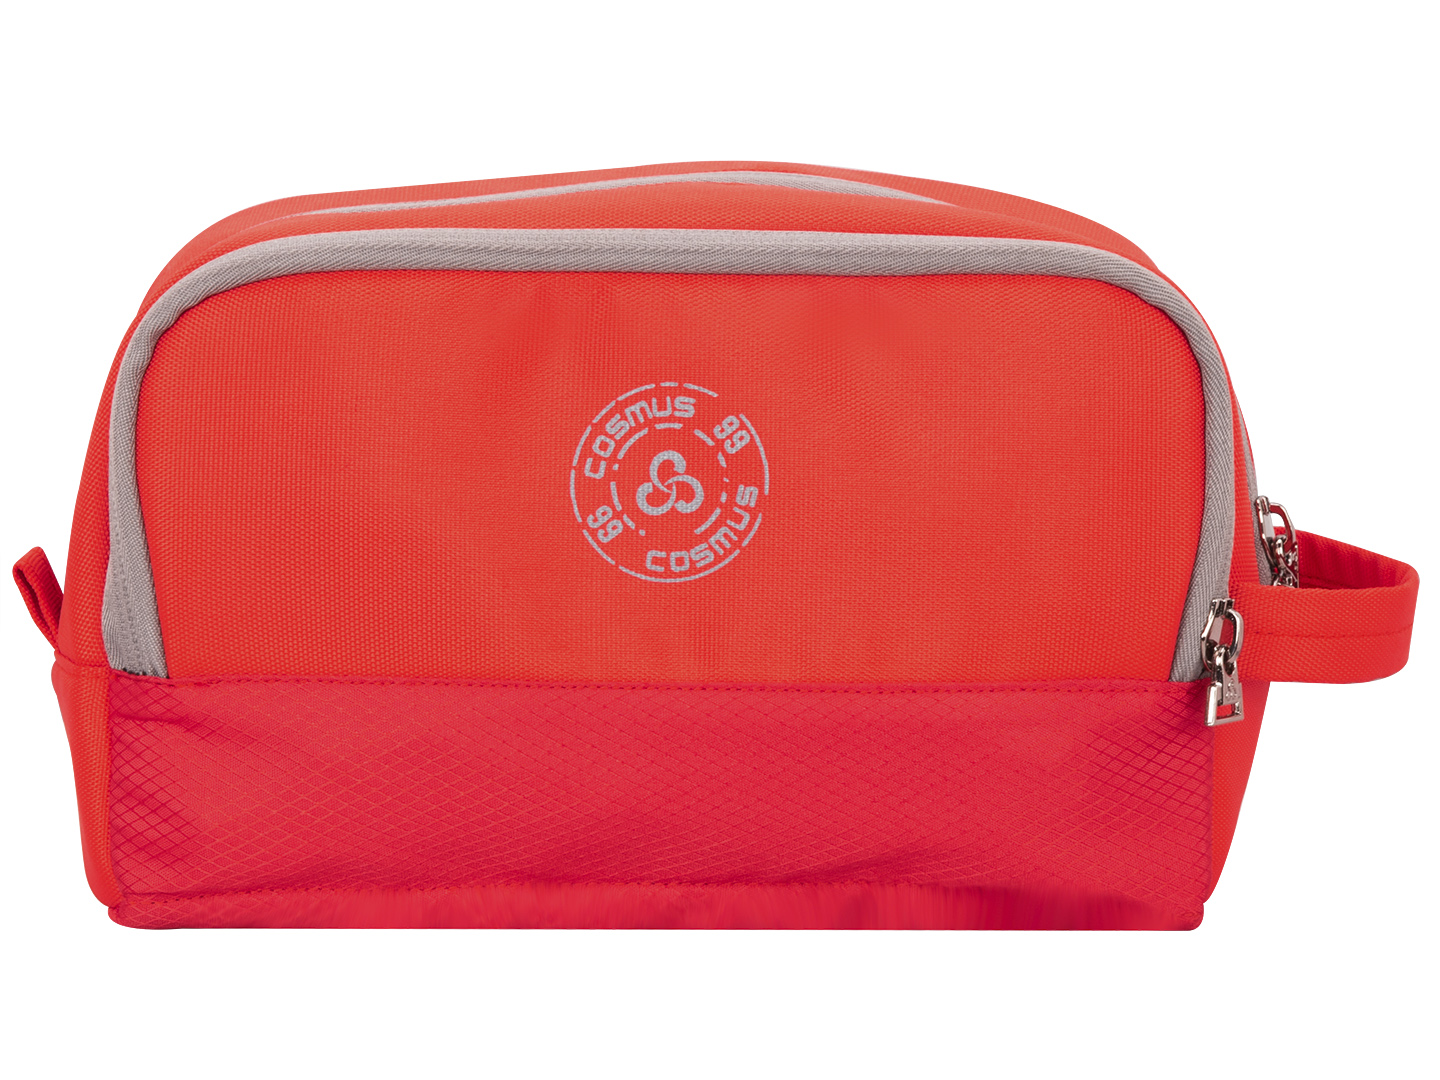 Carryon travel Red toiletry pouch bag